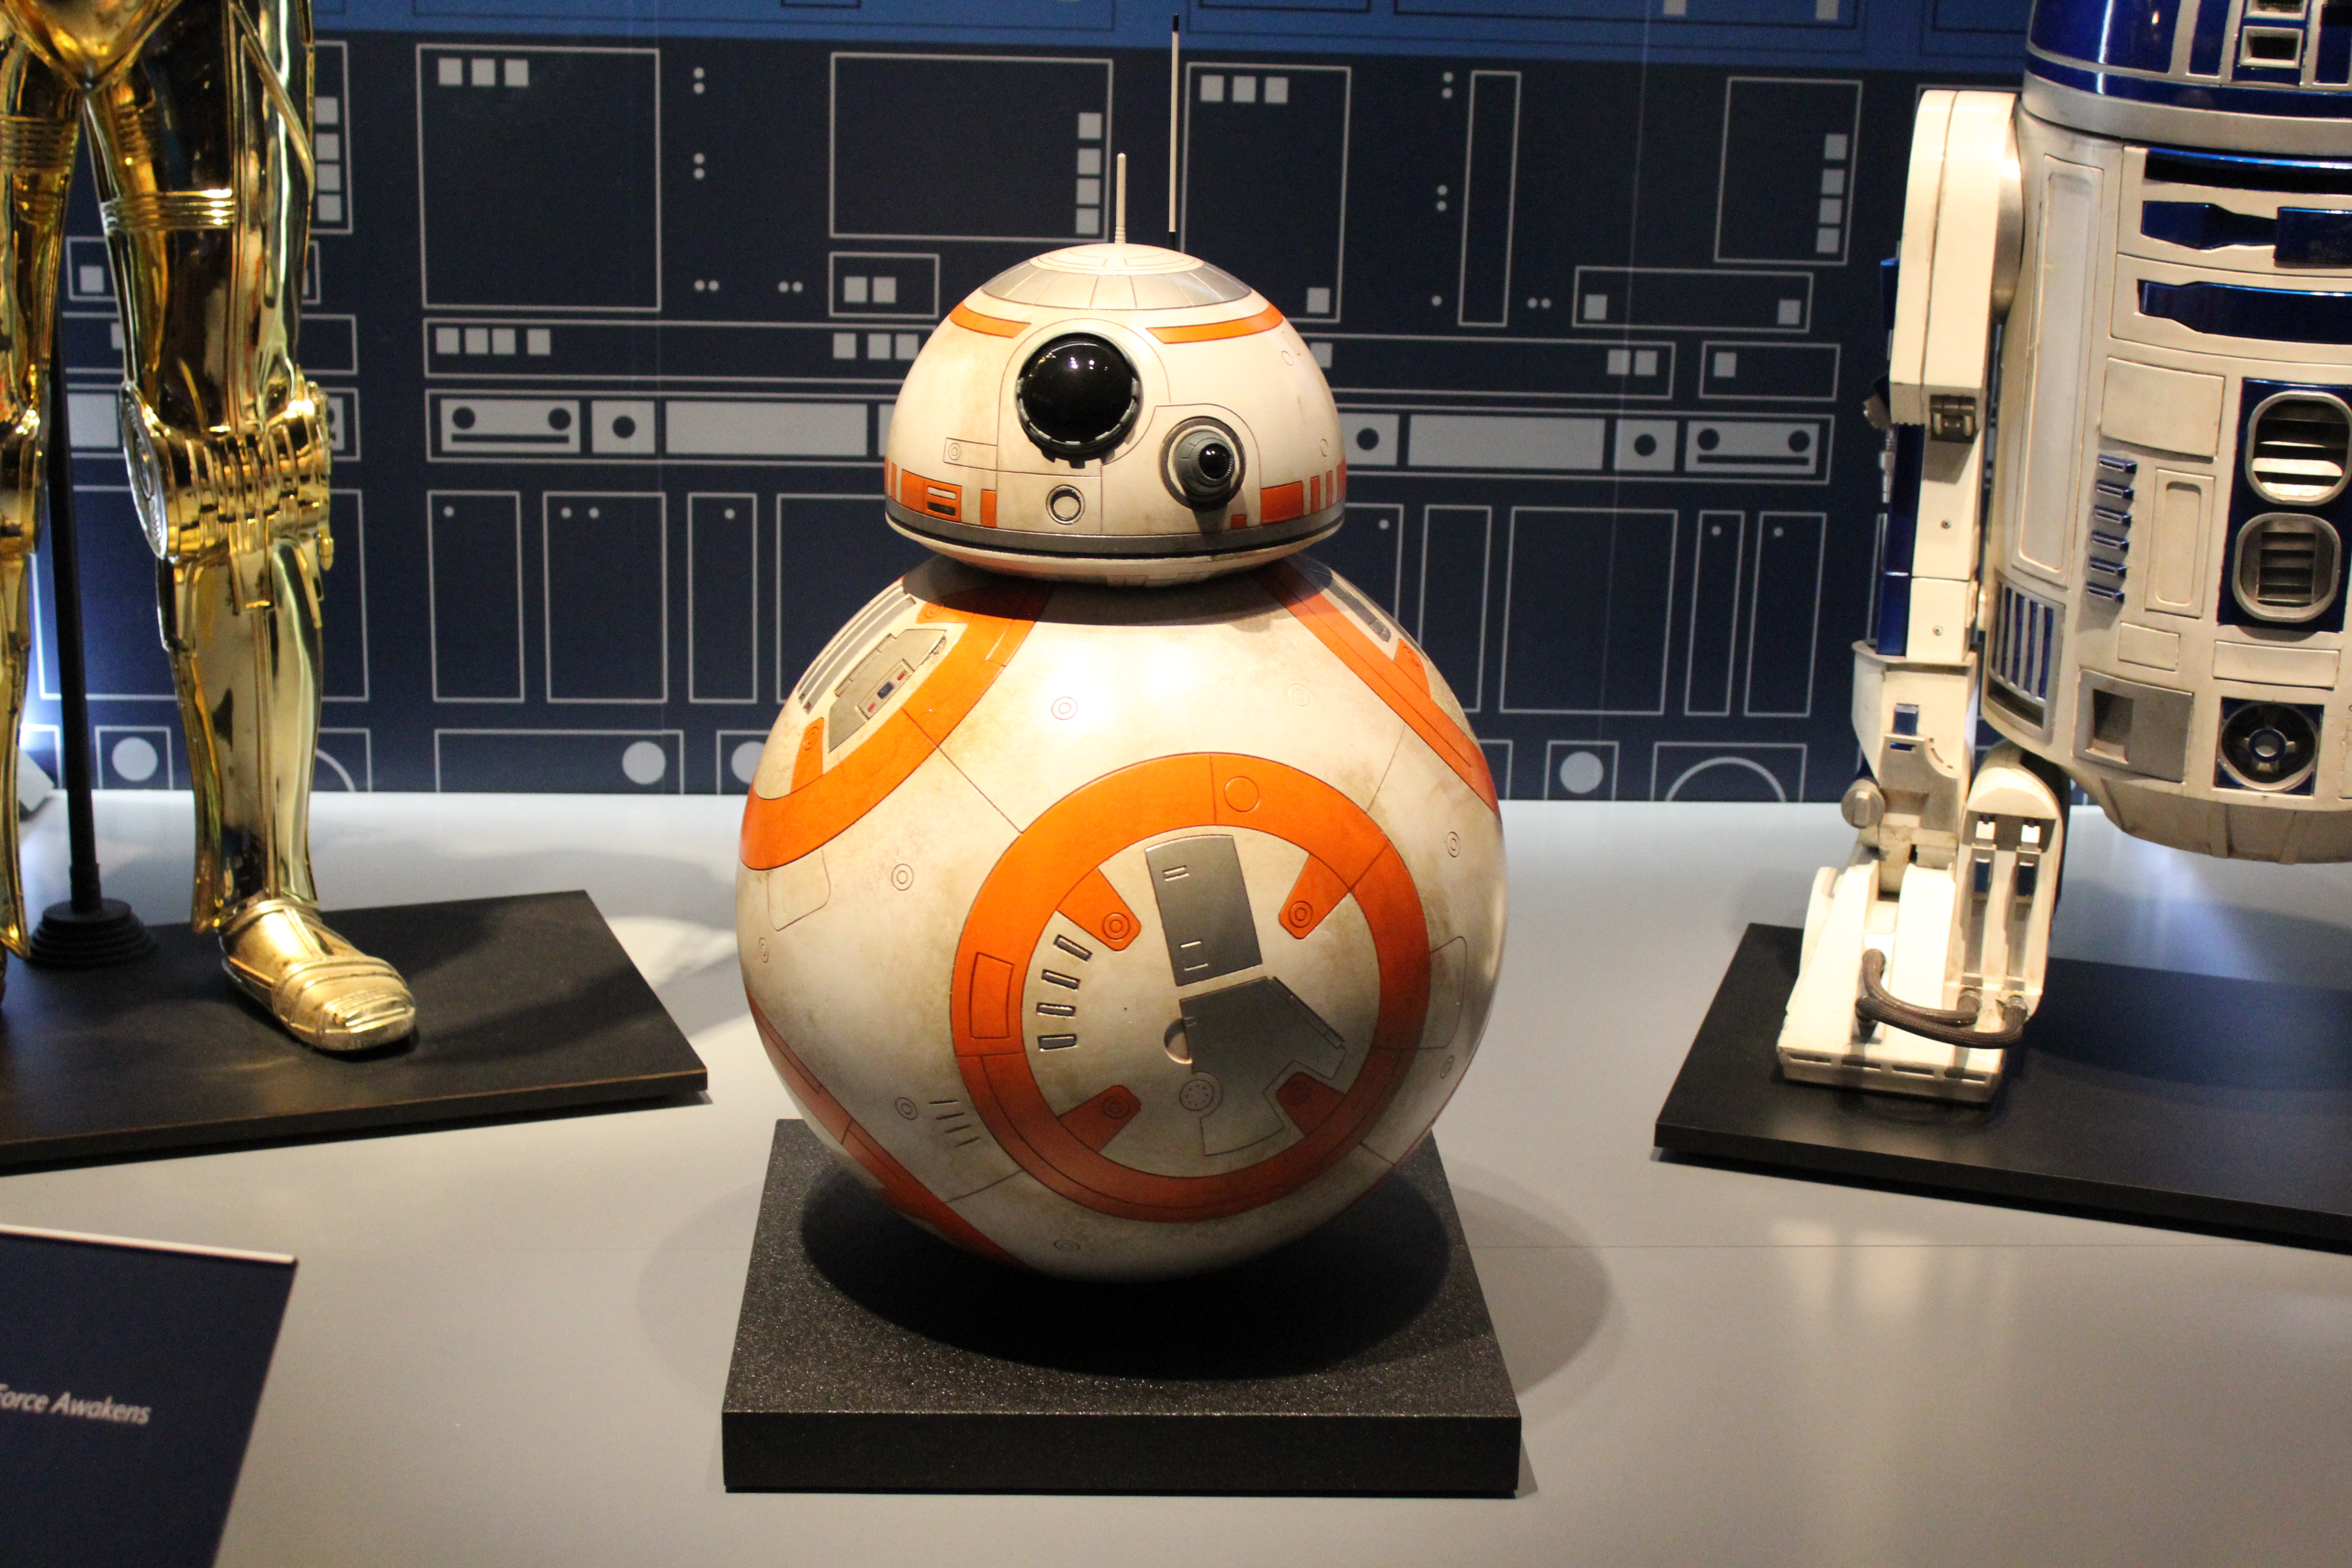 Photo of Star Wars droid BB-8.